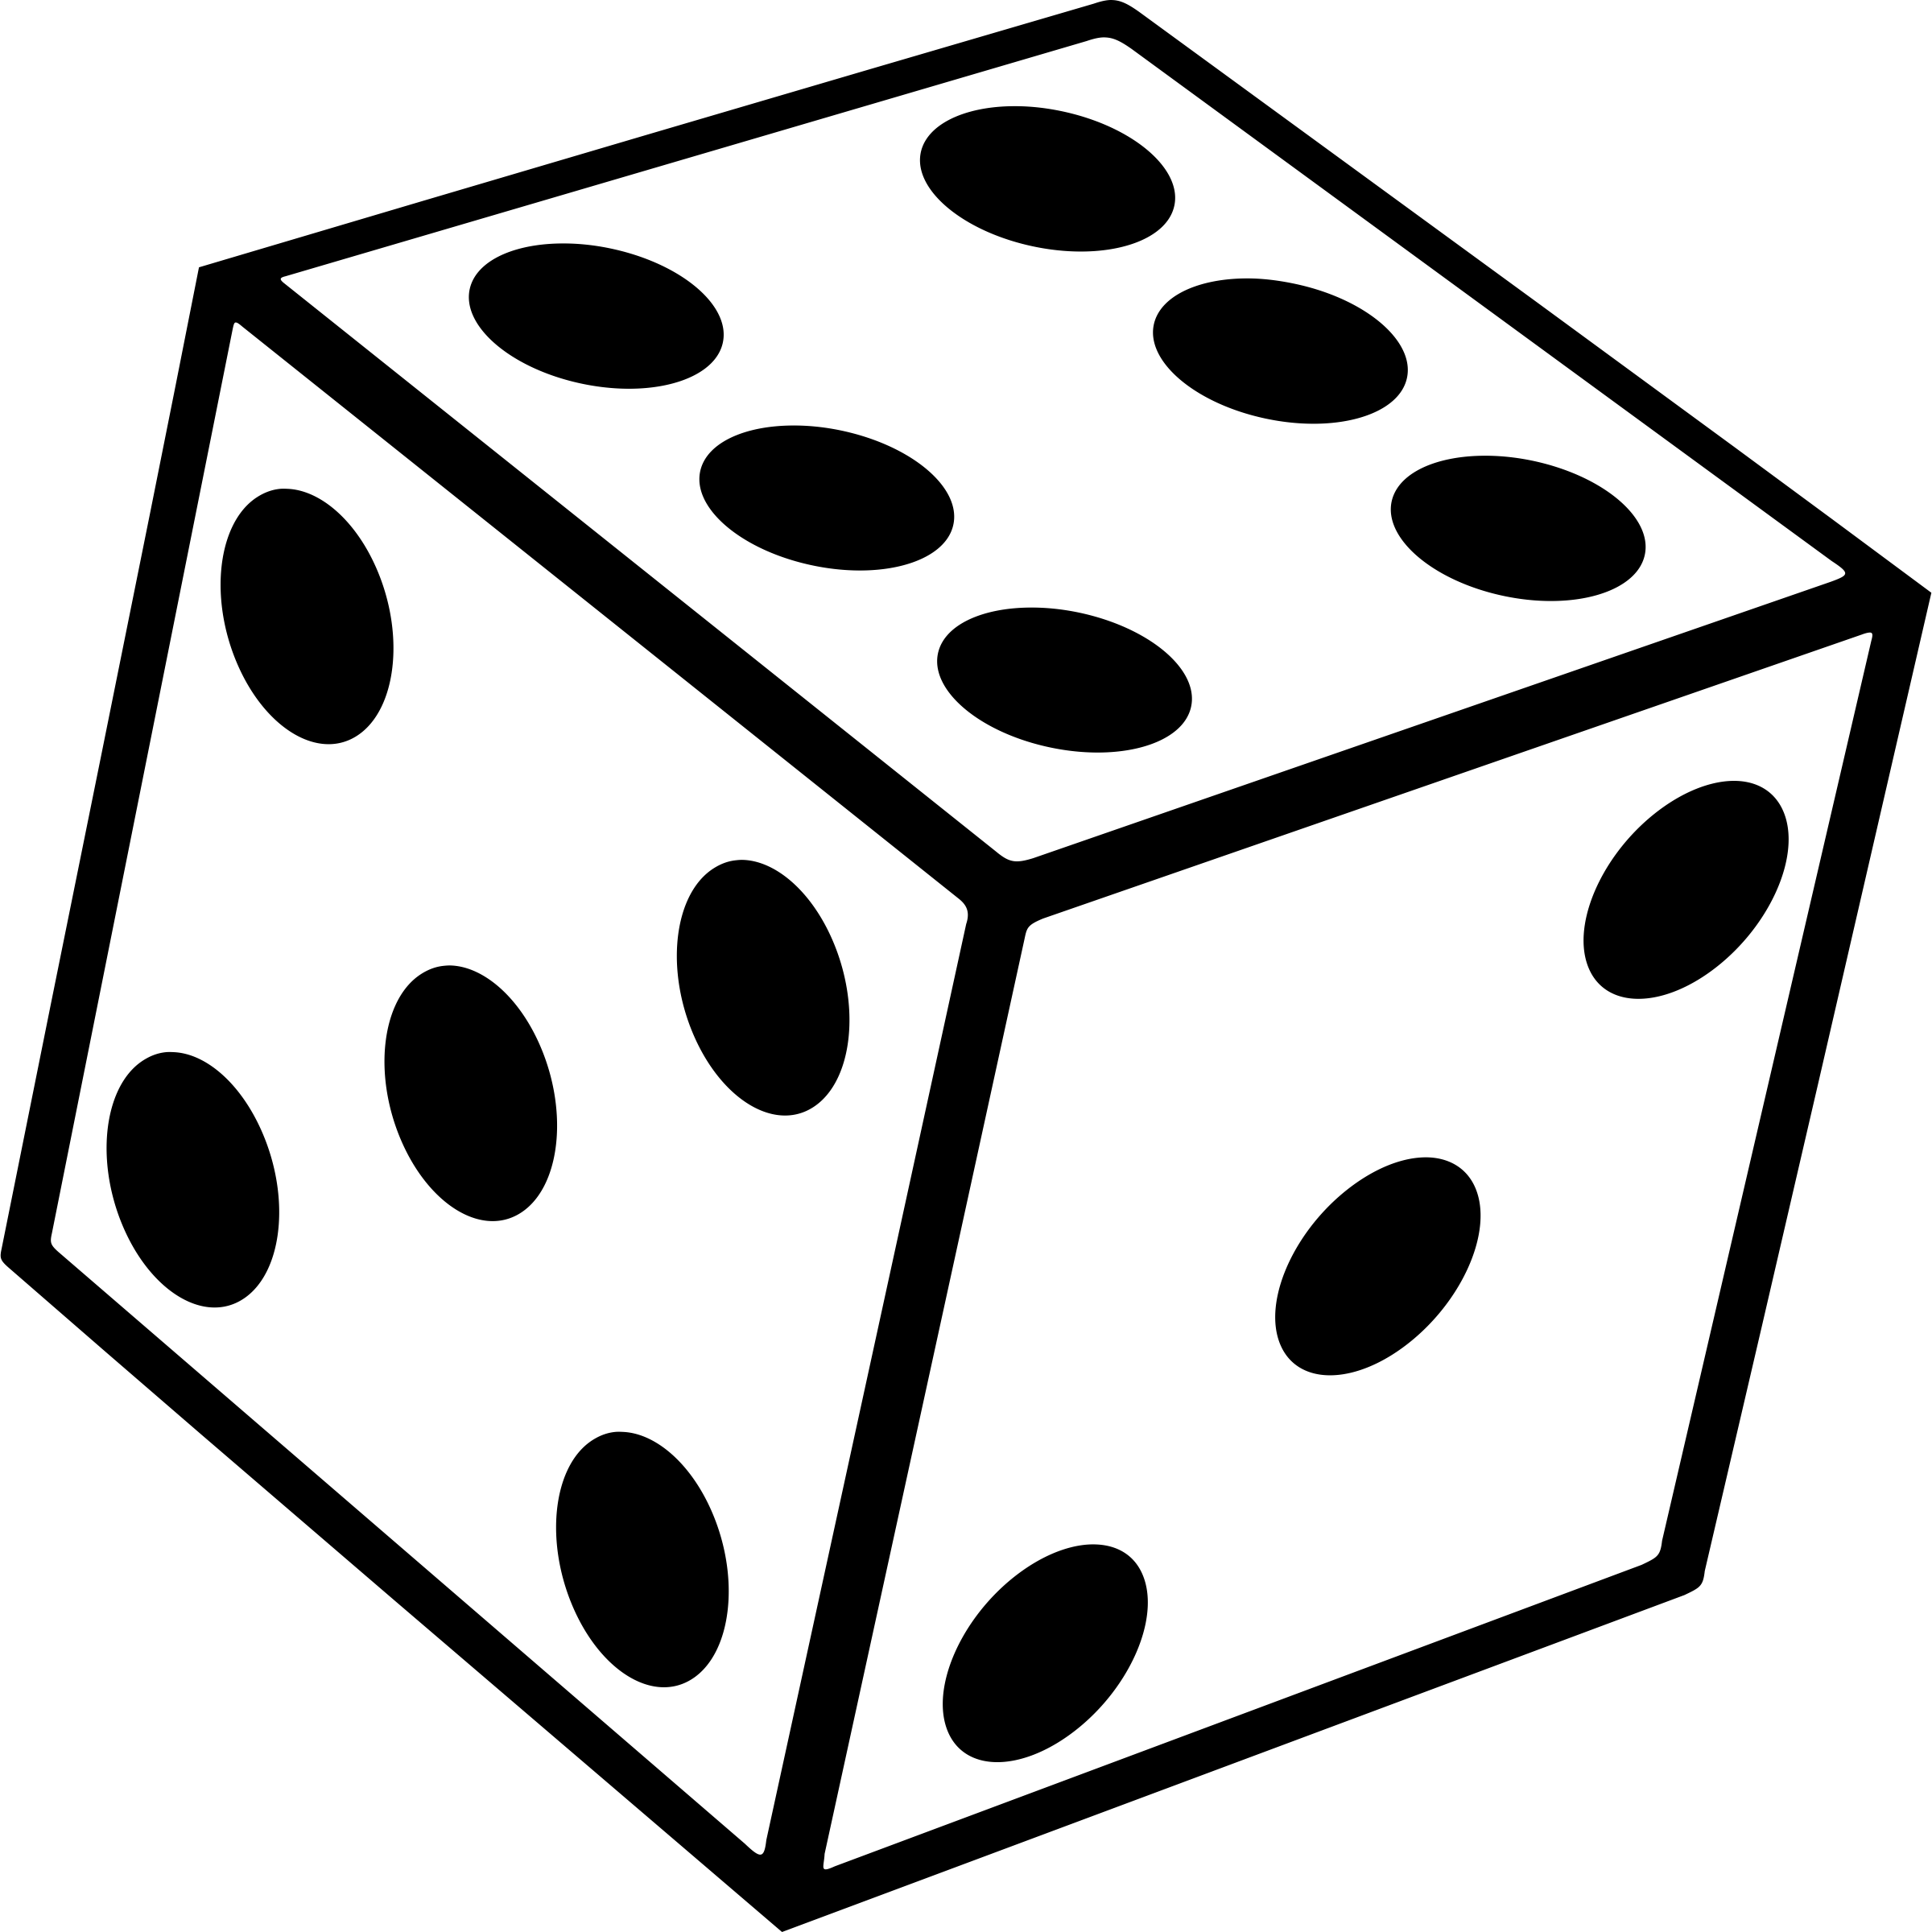 Dice clipart sided, Dice sided Transparent FREE for download.